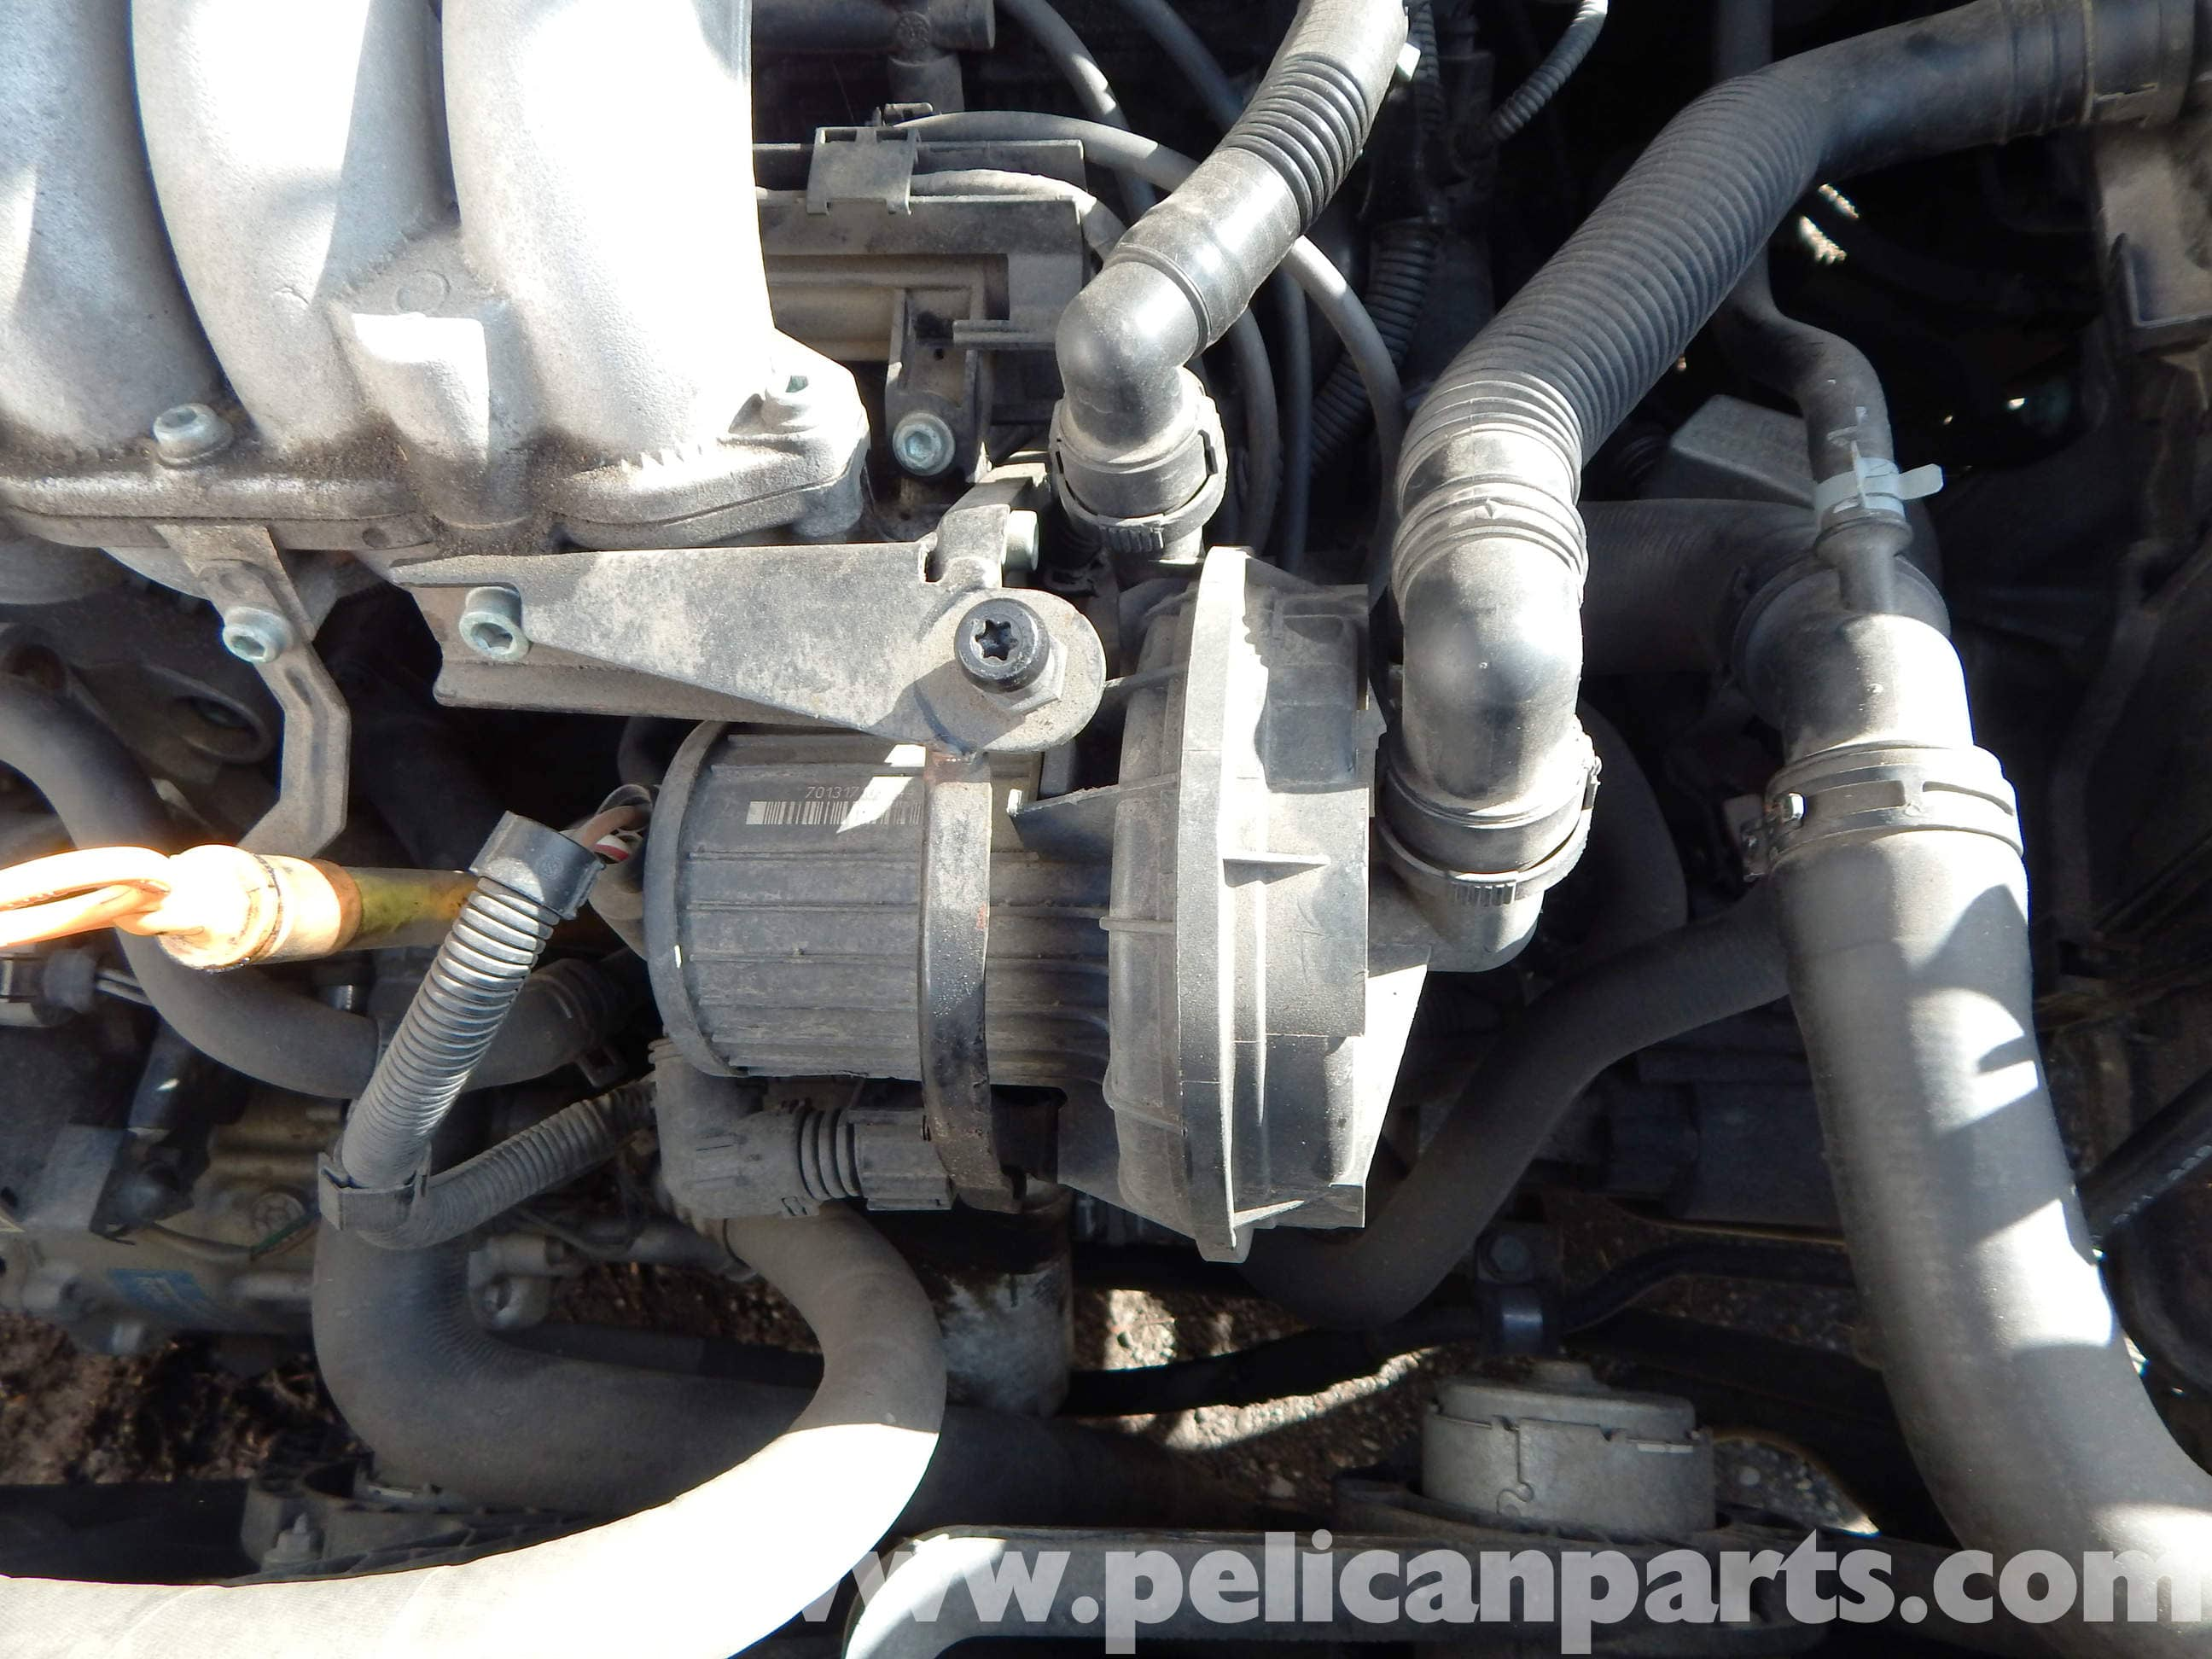 Volkswagen Jetta Mk4 Secondary Air Pump Replacement | Jetta Mk4 2.0L (1998-2005) | Pelican Parts ...